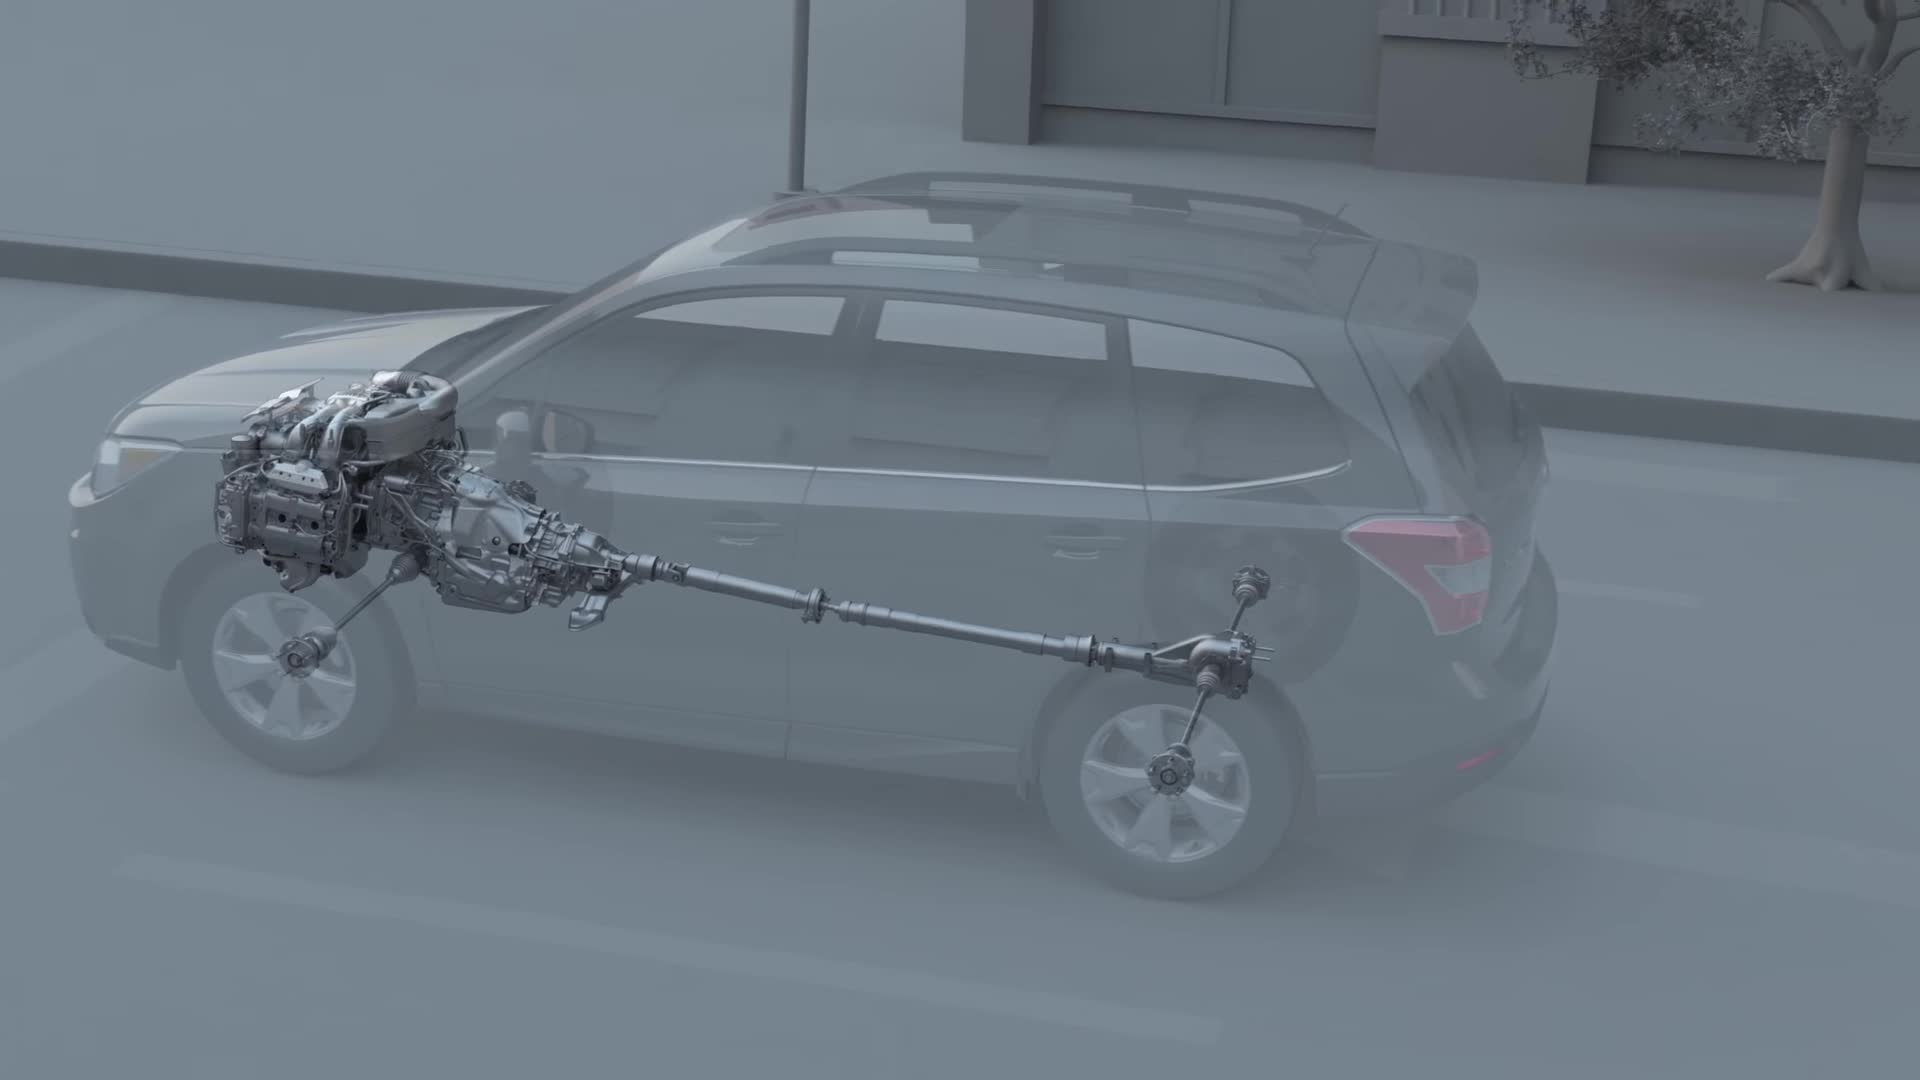 boxer, crash, powertrain, safety, Safety. Subaru Protective Systems. GIFs